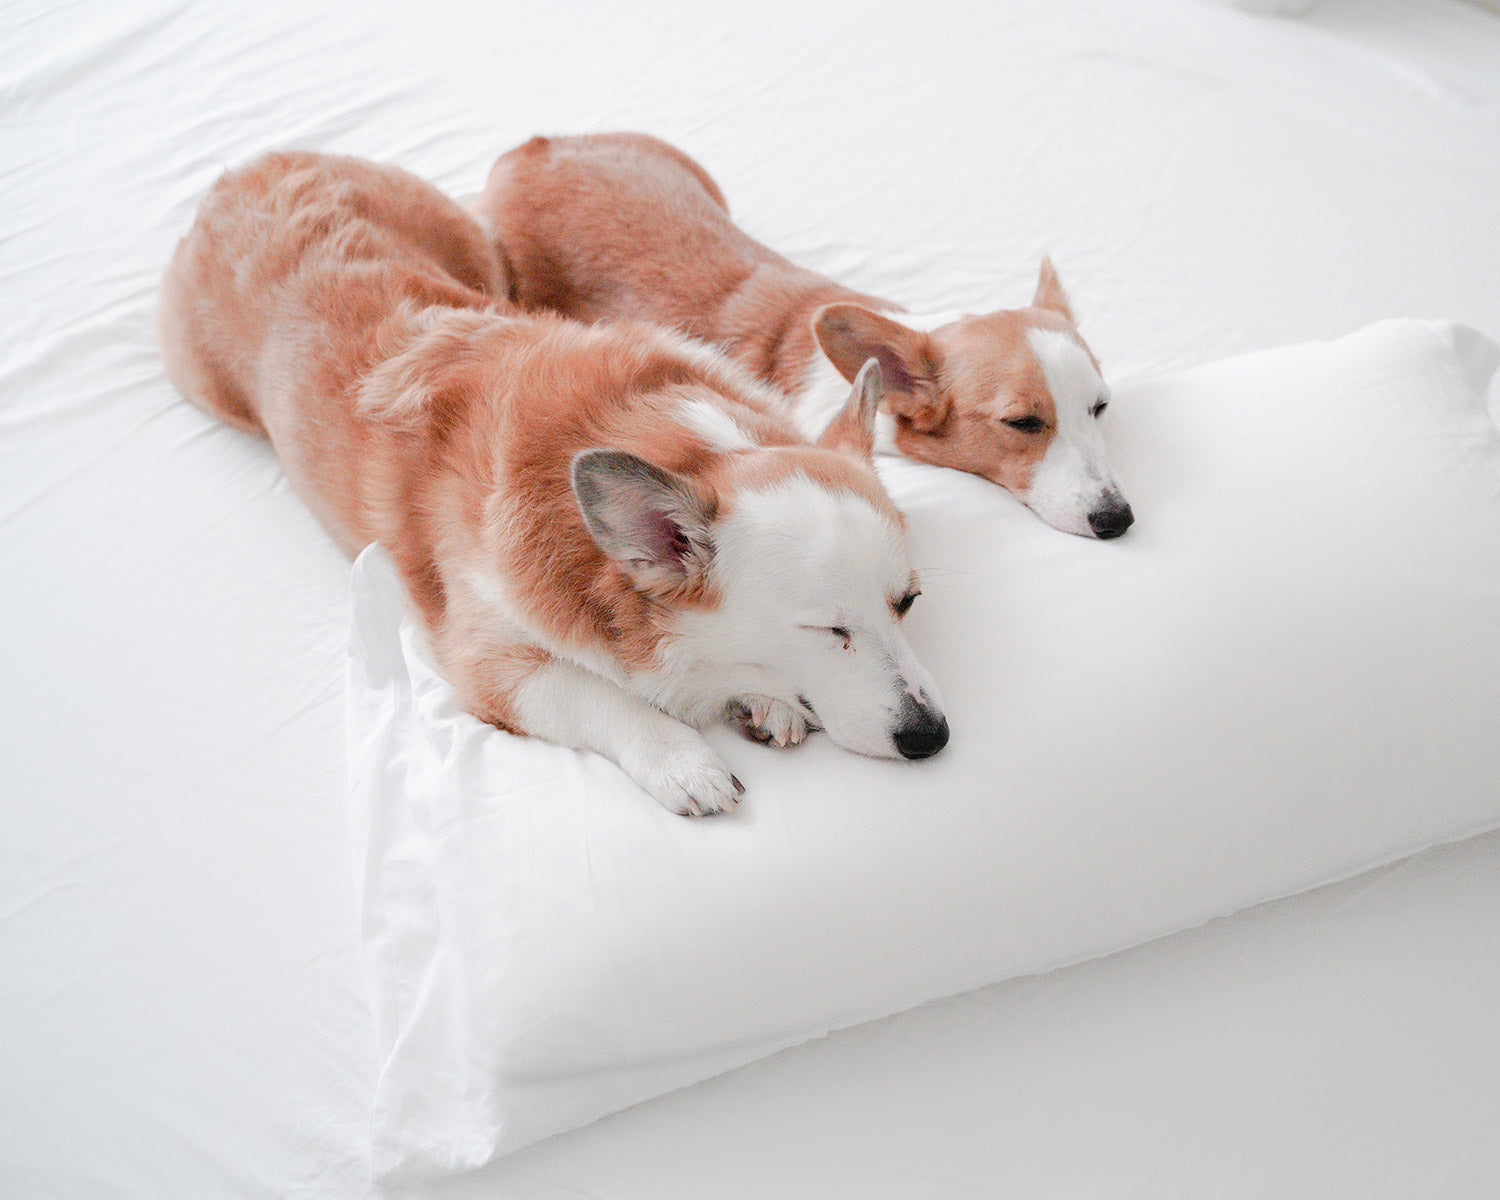 two corgi dogs sleeping on white Peacock Alley sheets